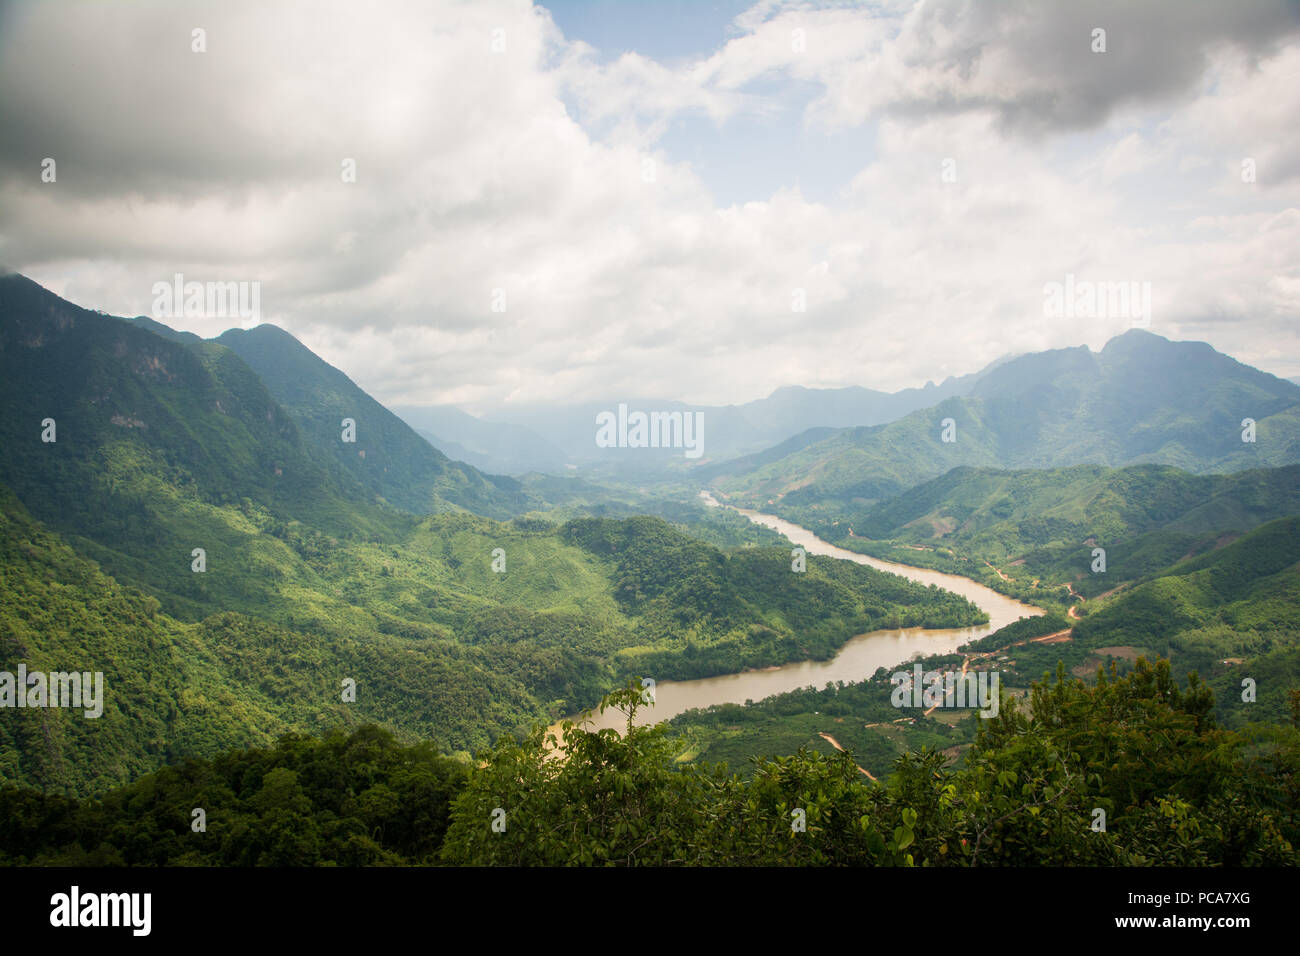 Nam Ou river flowing through beautiful lush green landscape seen from a viewpoint above Nong Khiaw in Laos PDR. - Stock Image